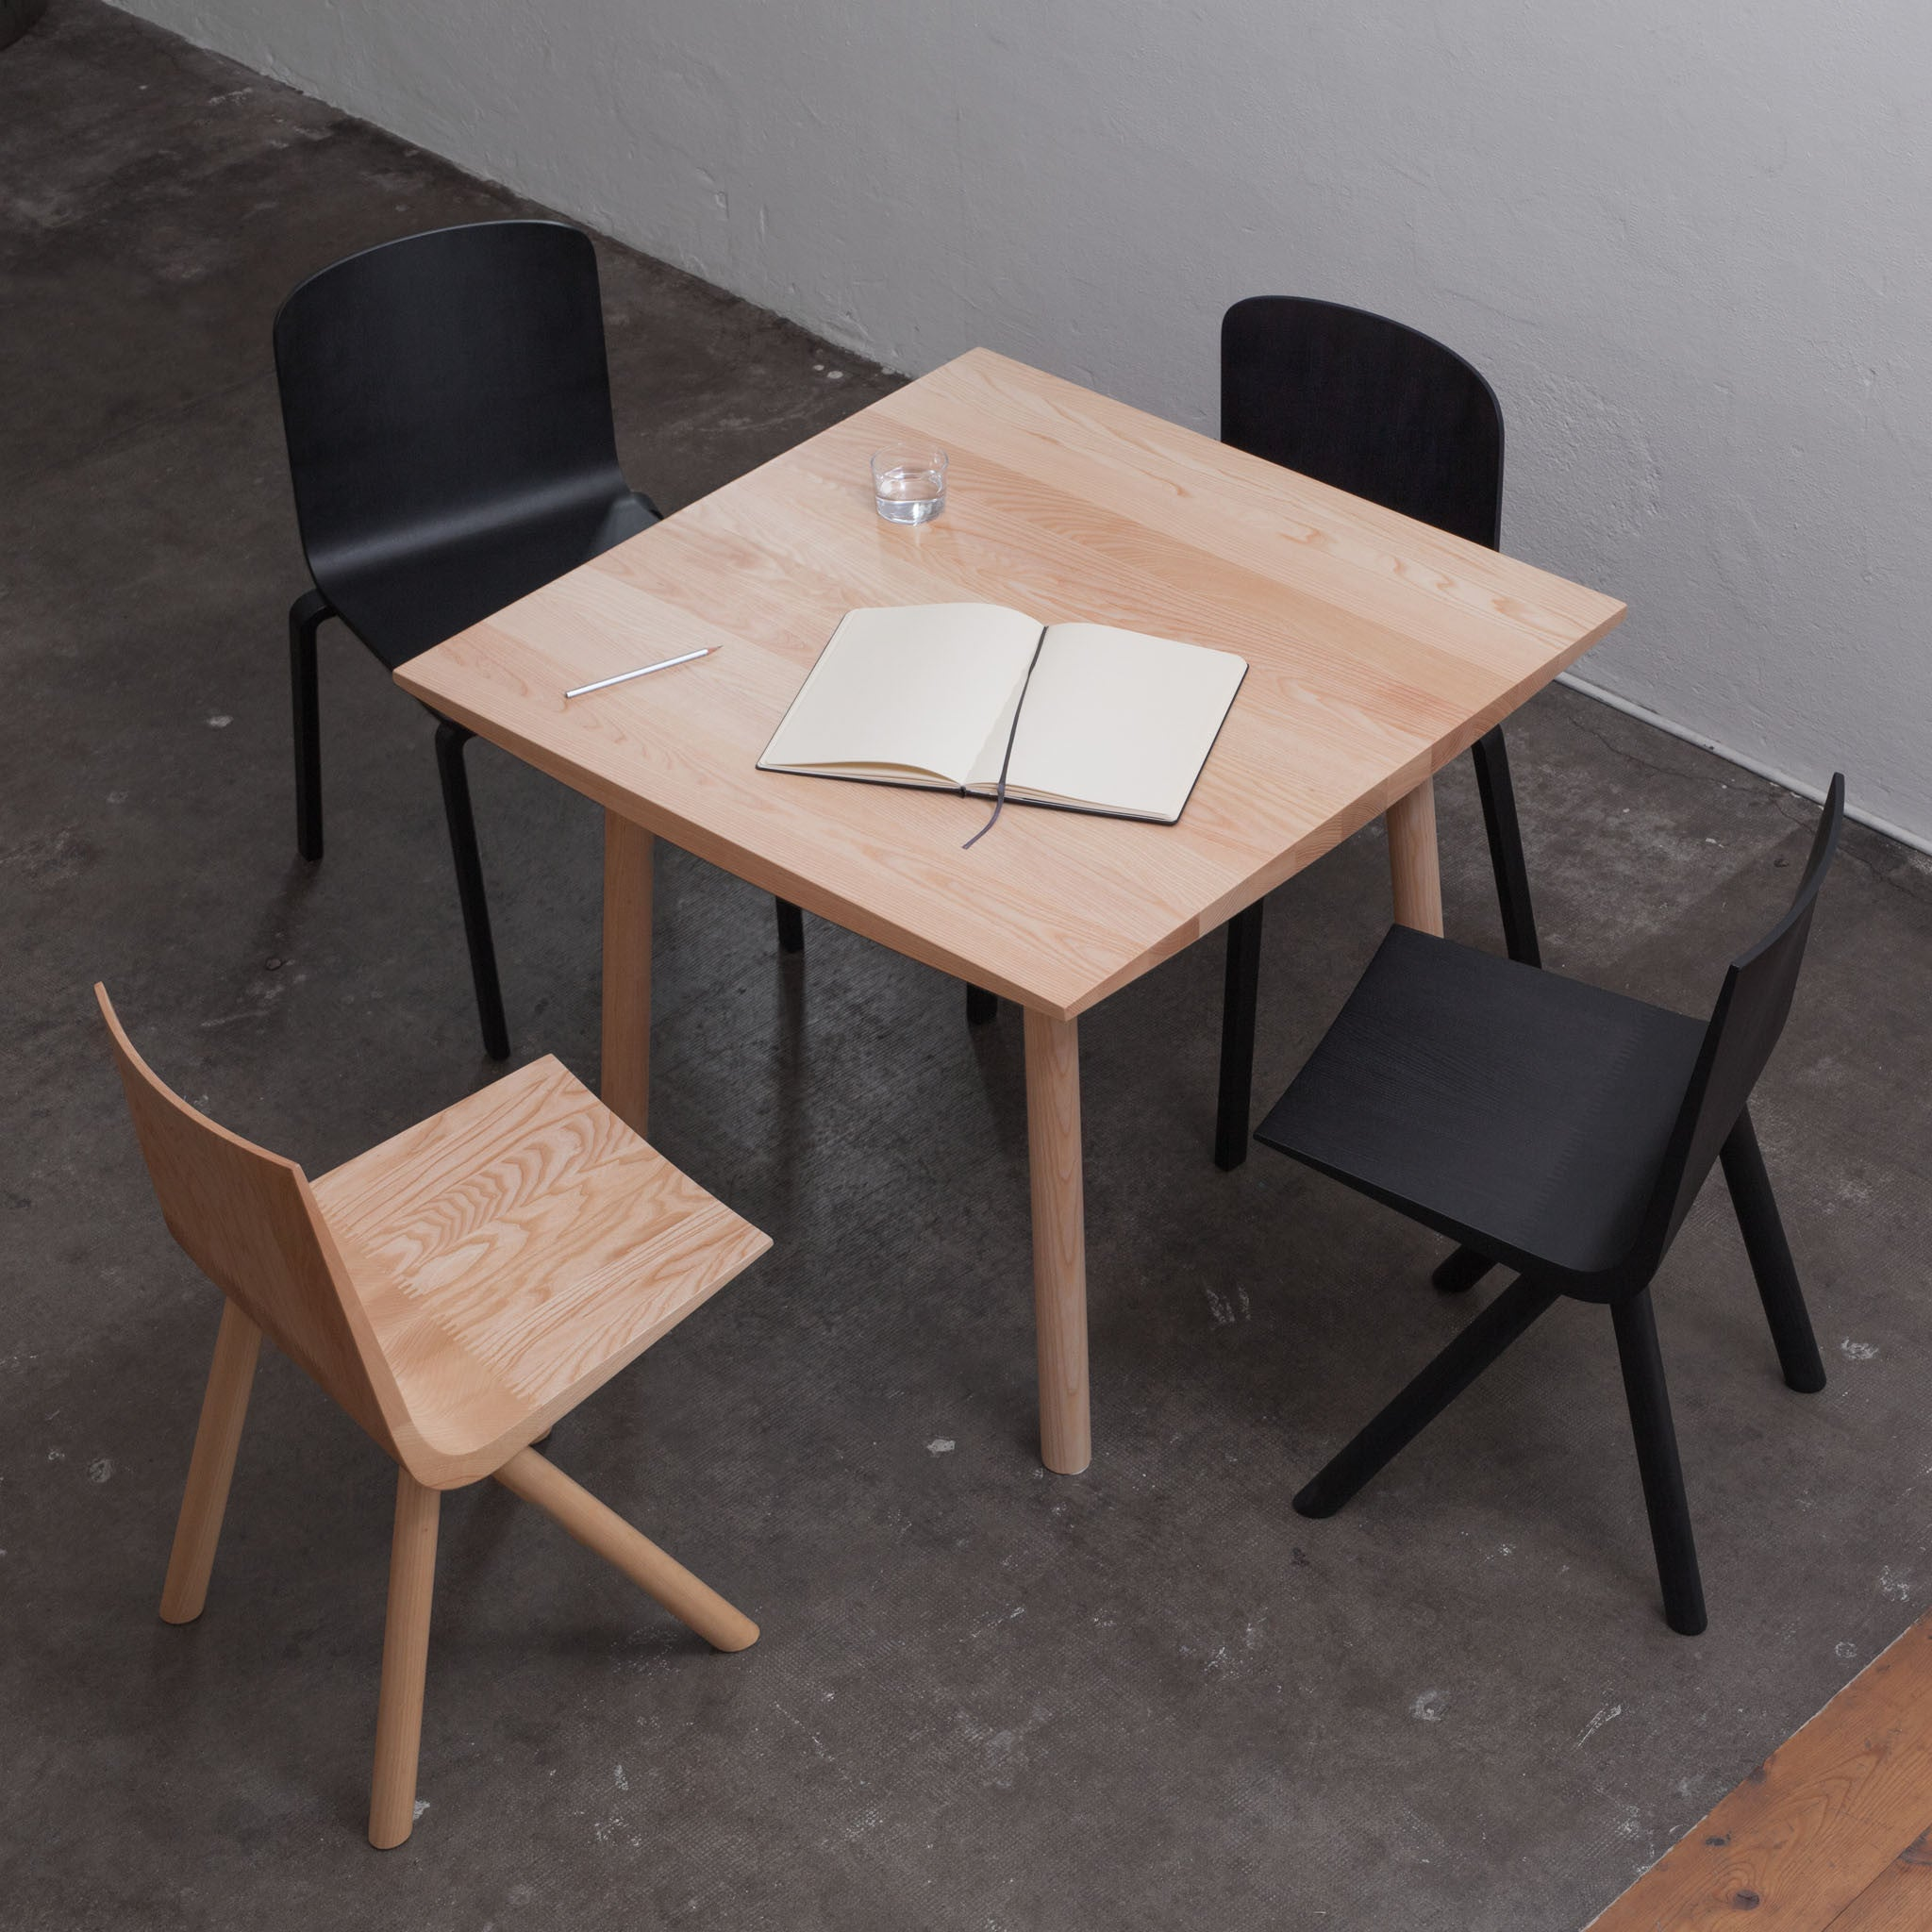 Cresta, chair, dining, solid wood, seat, Jörg Boner, DADADUM